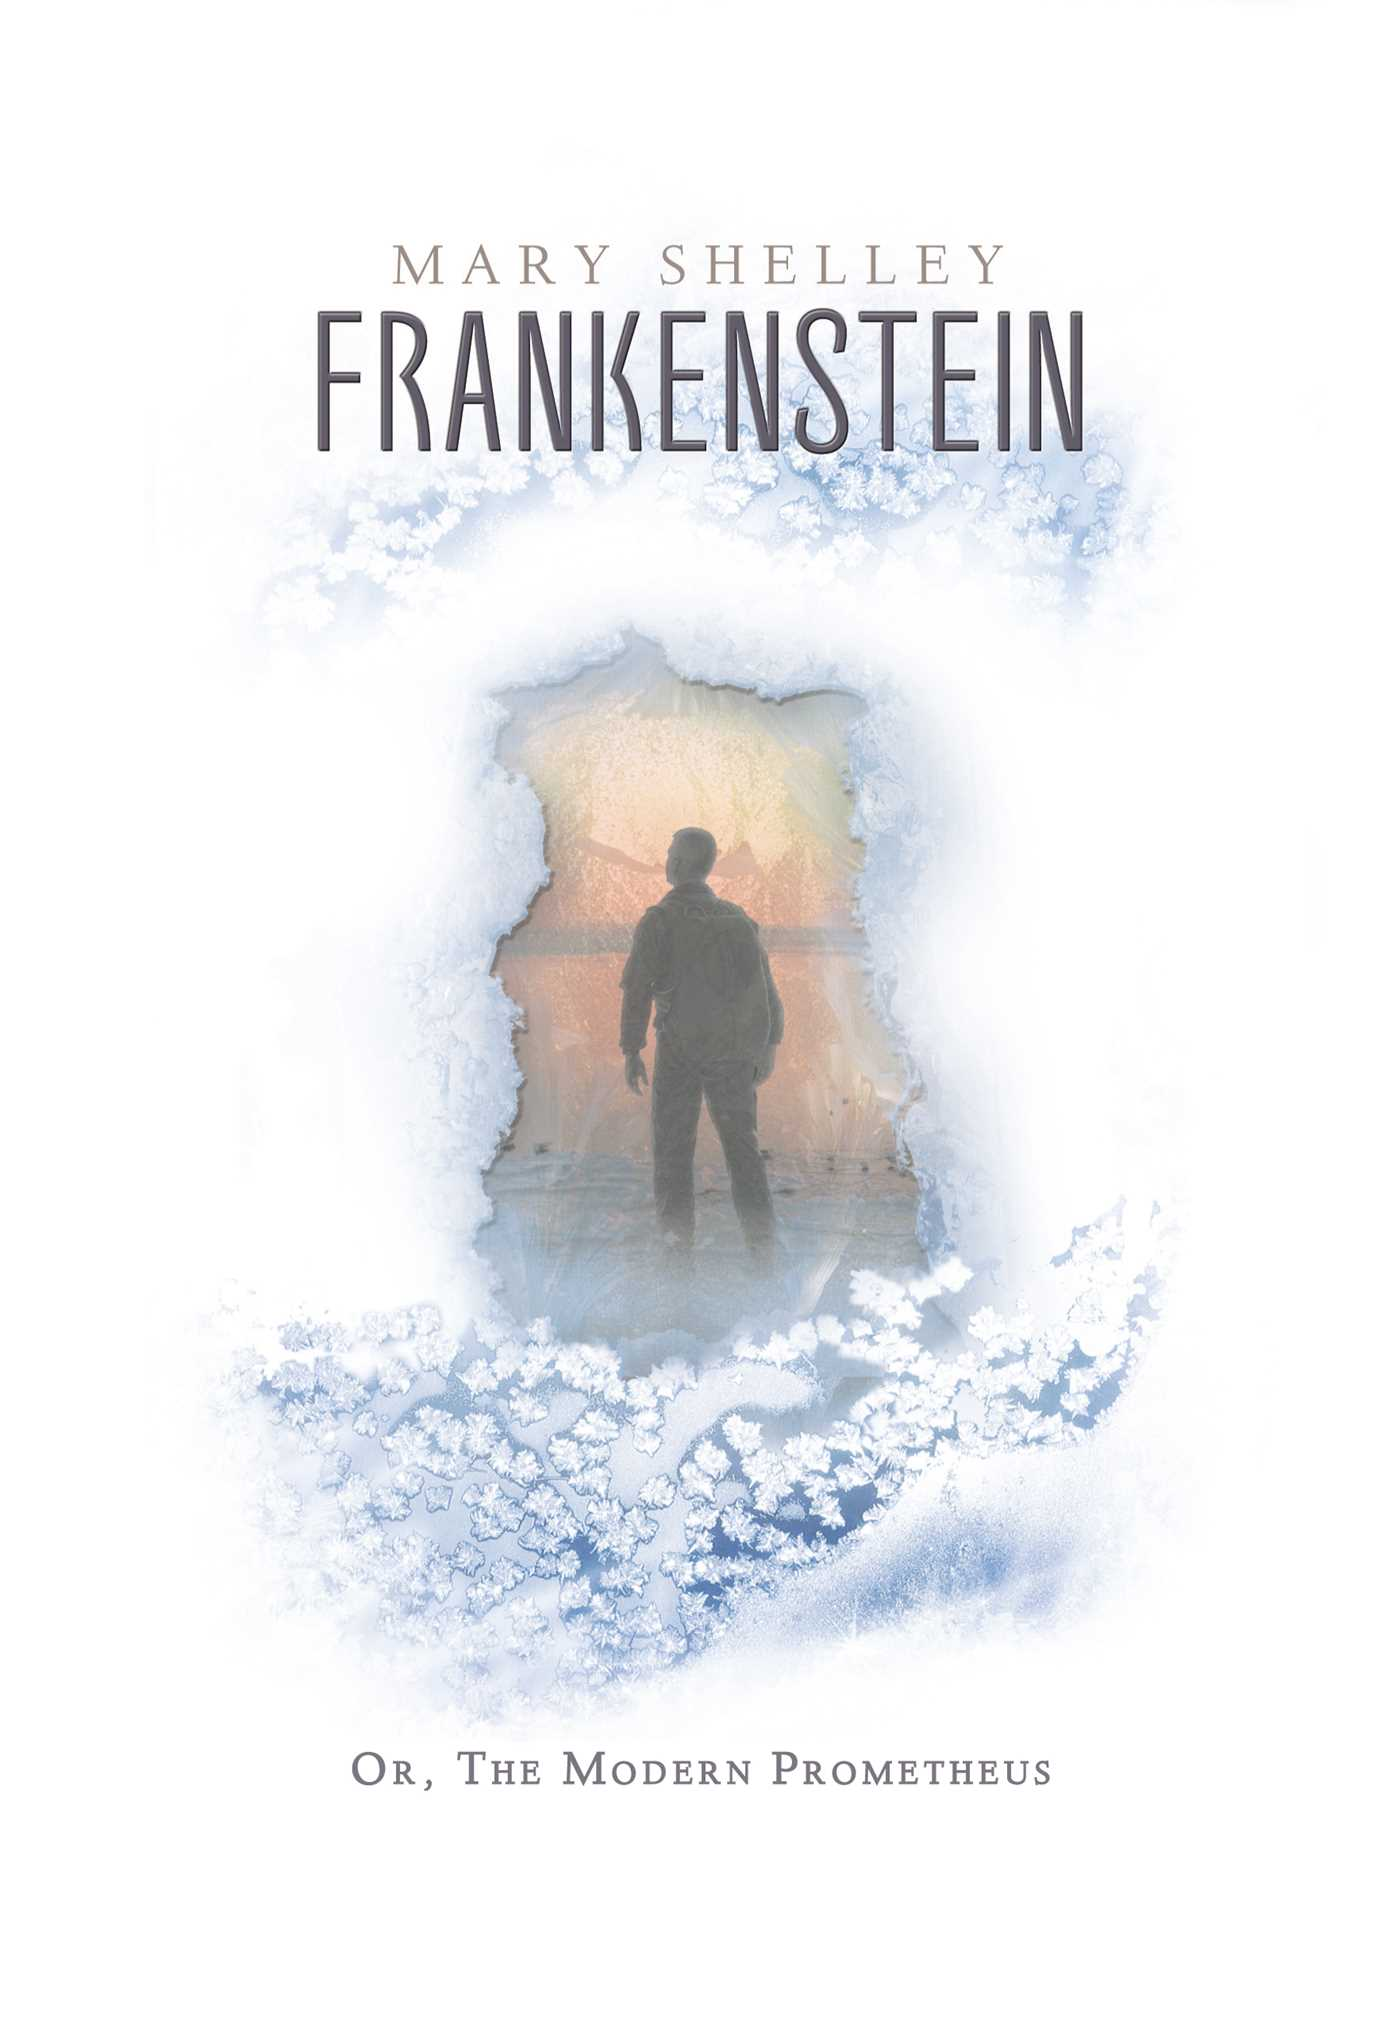 discovering the secrets of life in mary shelleys frankenstein Frankenstein: penetrating the secrets of nature introduction the birth of frankenstein on the working of some powerful engine, show signs of life thus she began writing frankenstein enlarge image mary shelley remains best known today for this compelling story about a creature.